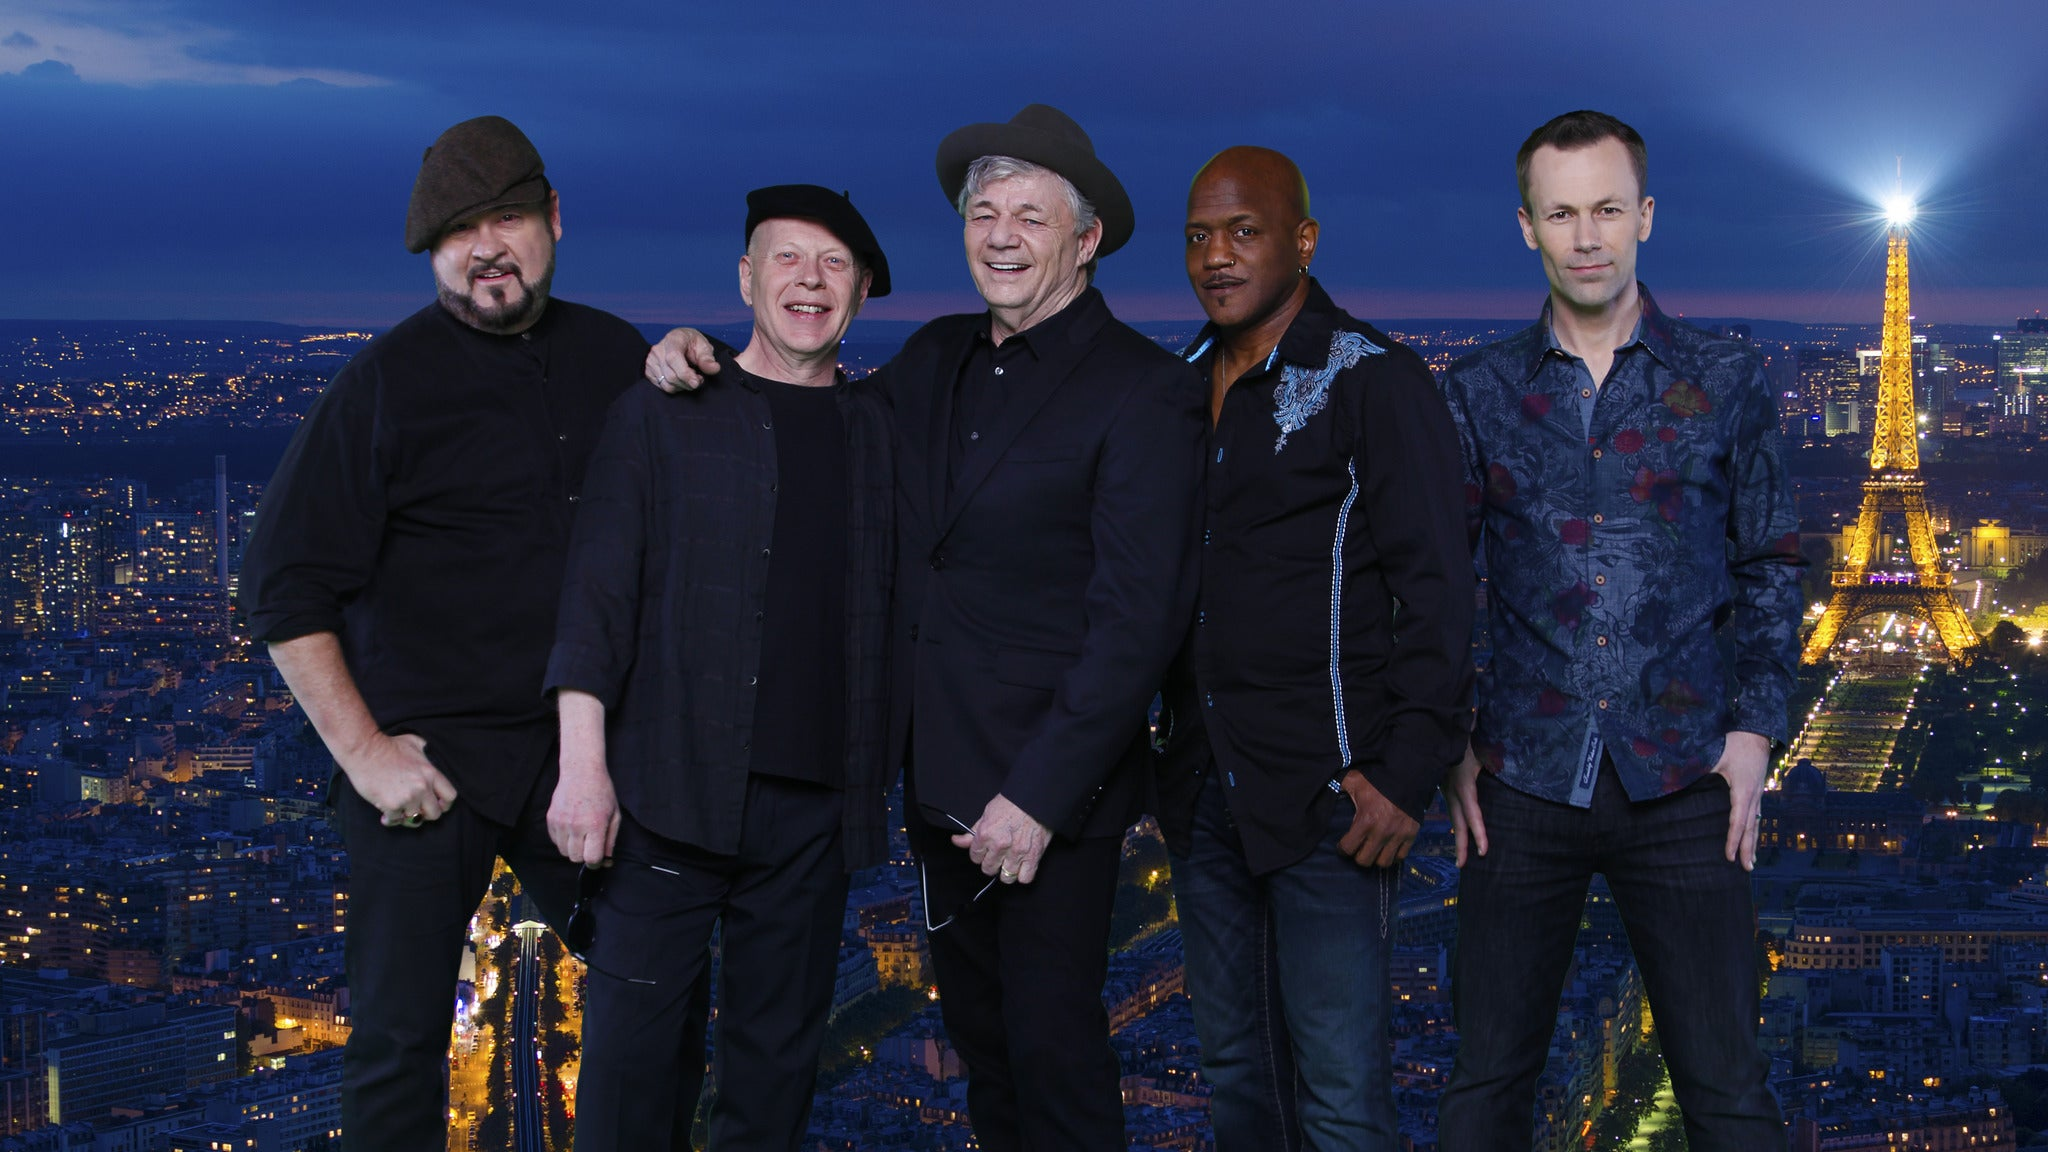 Steve Miller Band with Peter Frampton at Concord Pavilion - Concord, CA 94521